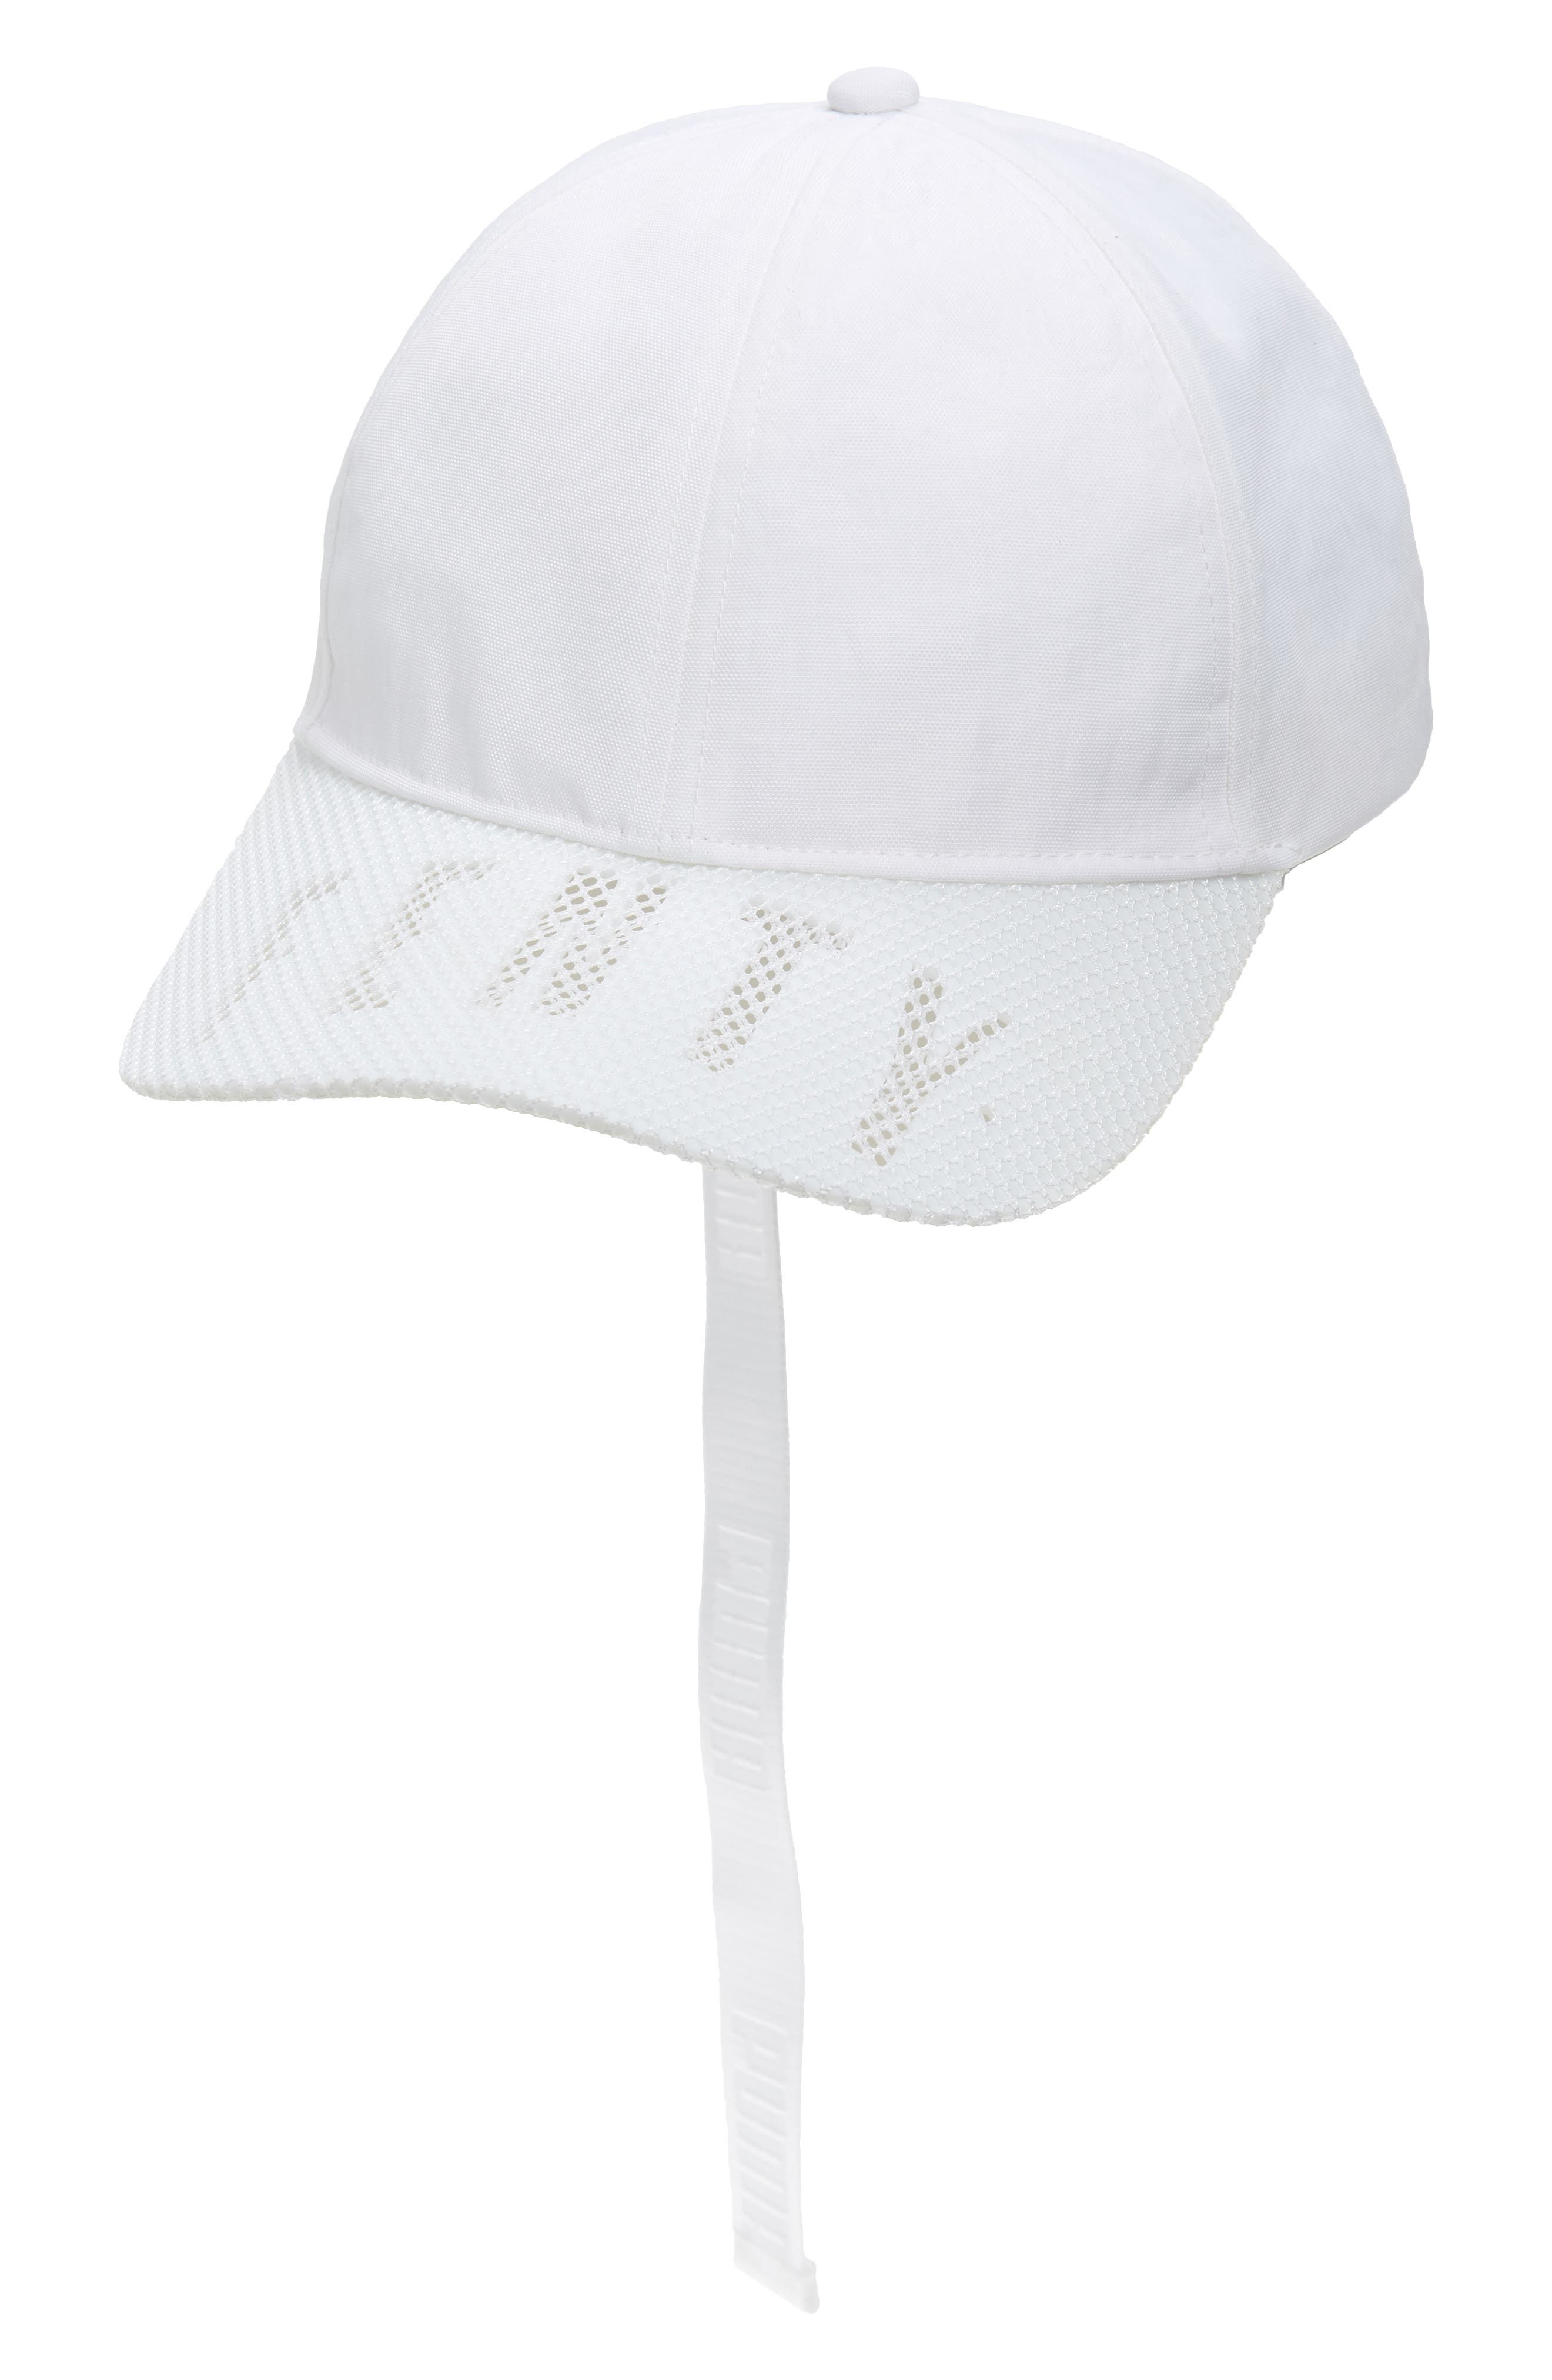 PUMA by Rihanna Perforated Baseball Cap,                         Main,                         color, Bright White